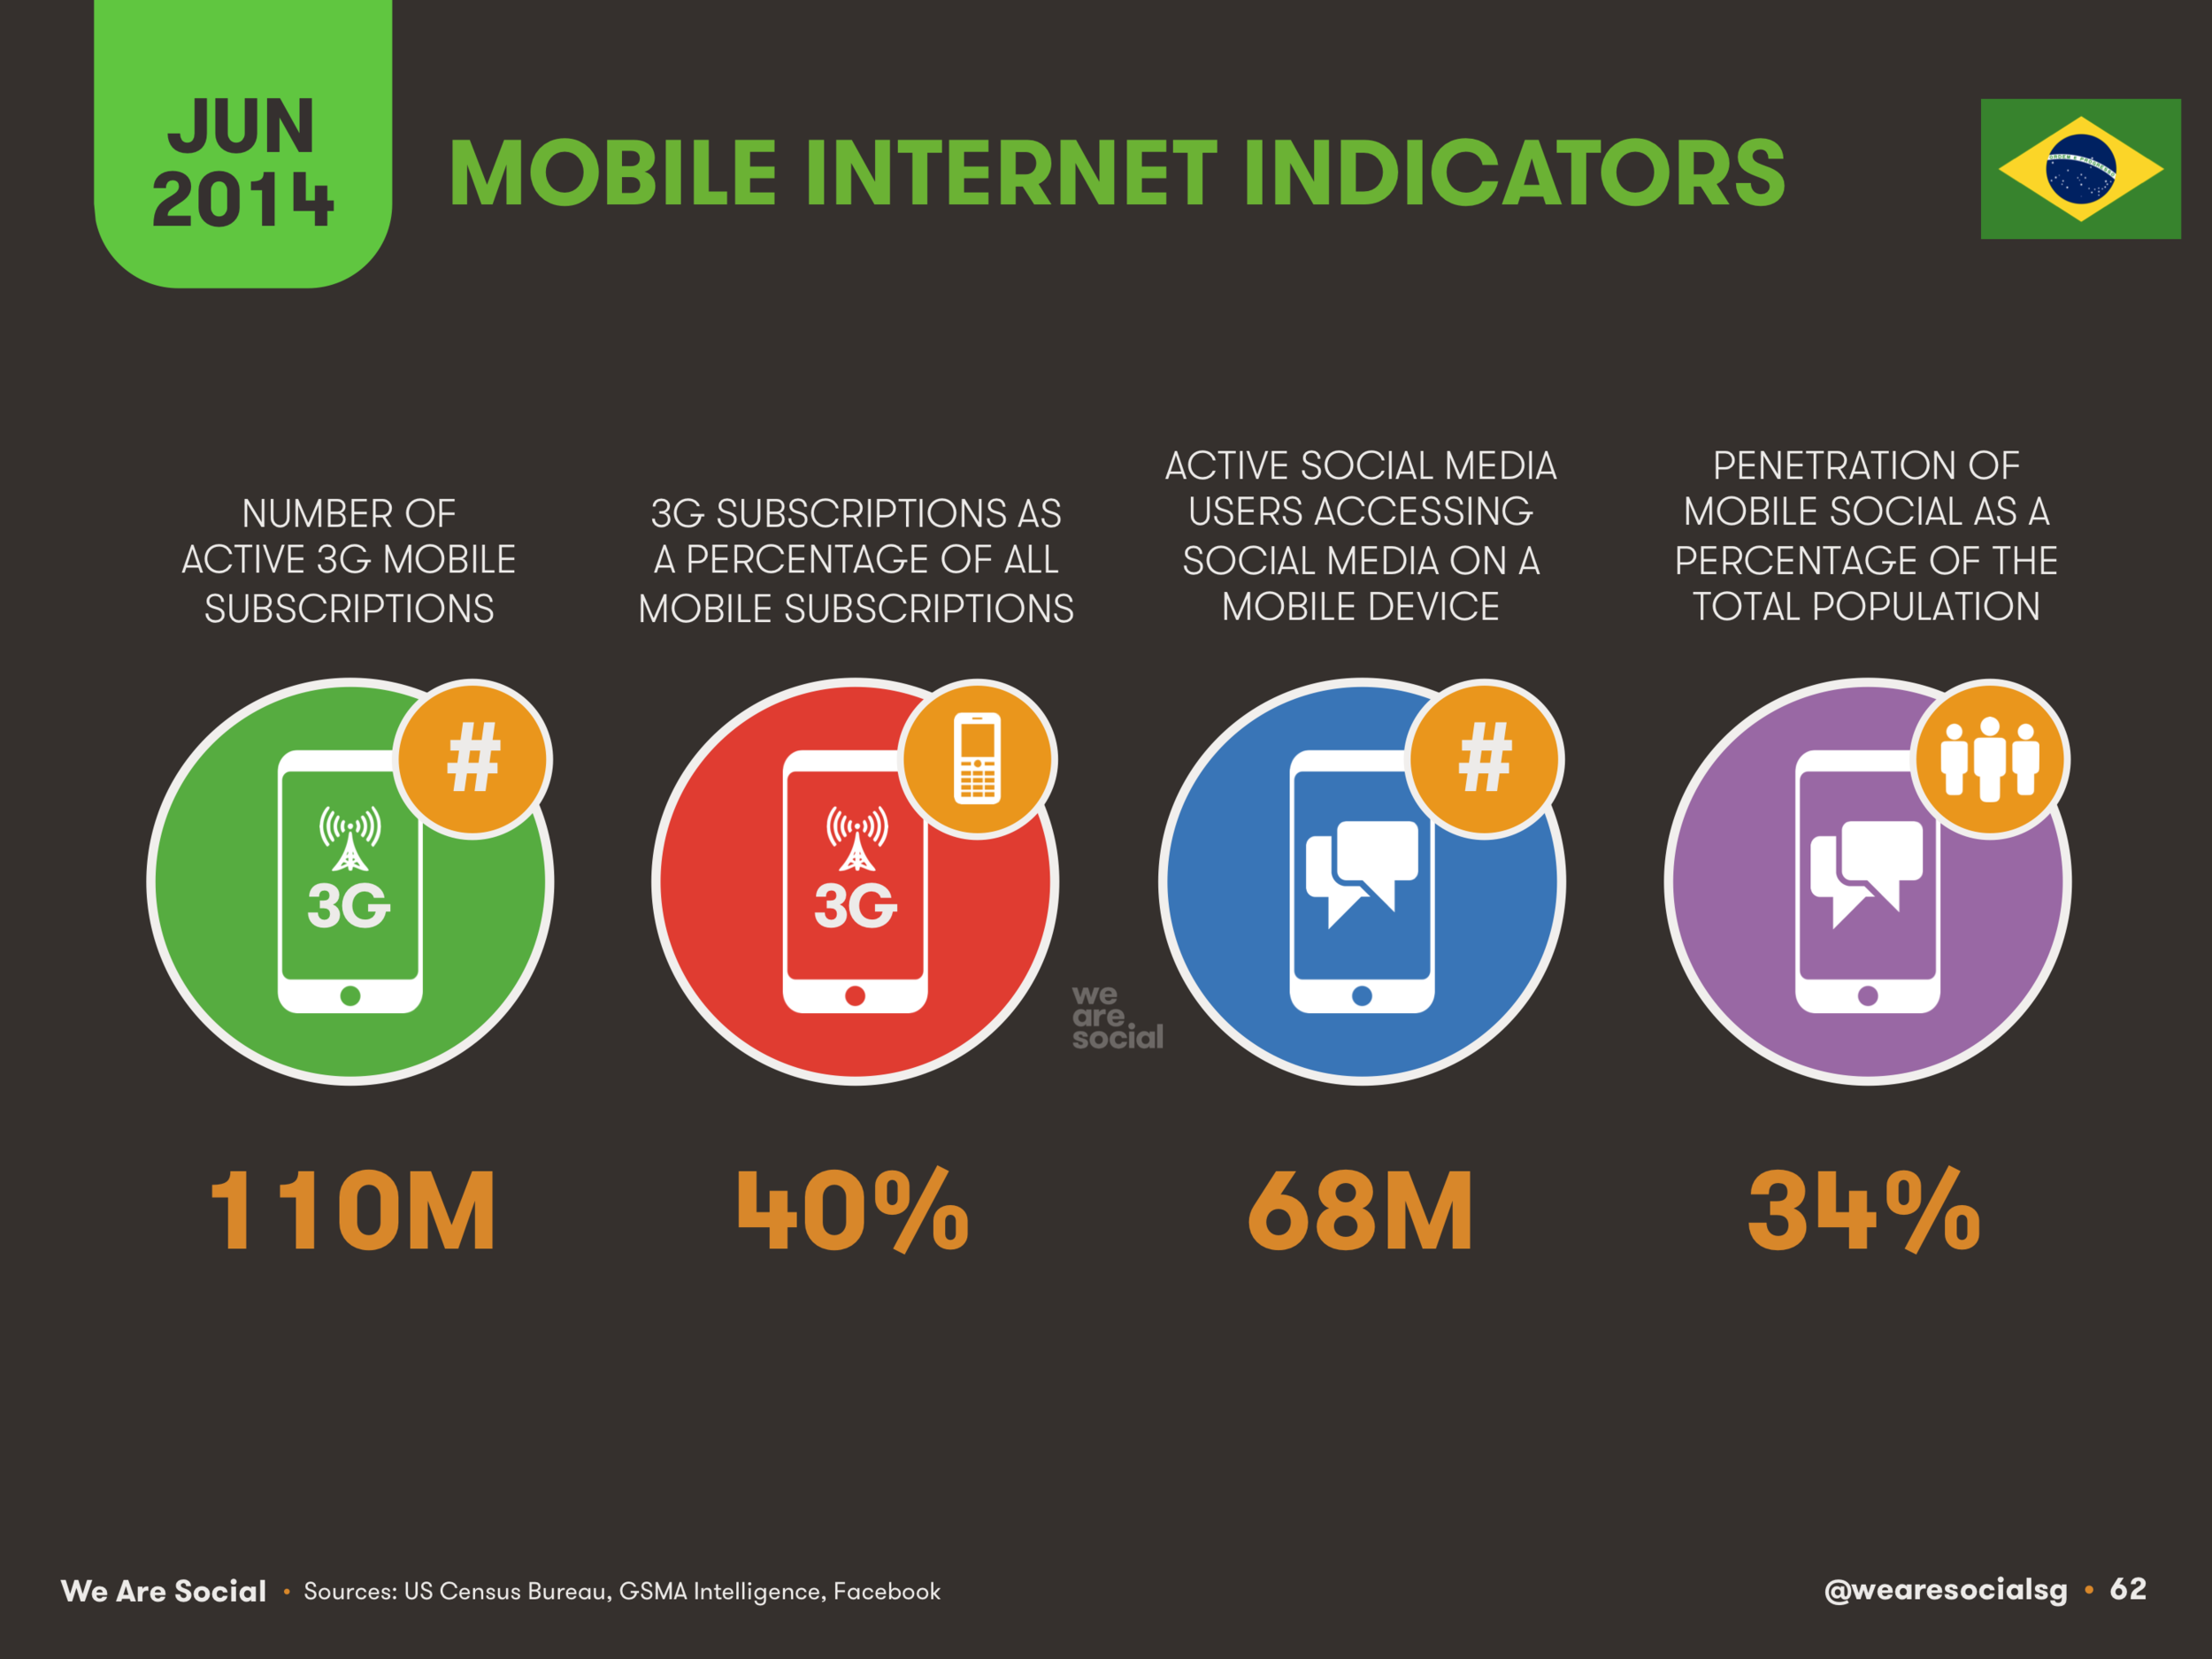 62 Mobile Internet Indicators for Brazil 2014 - We Are Social 1.png